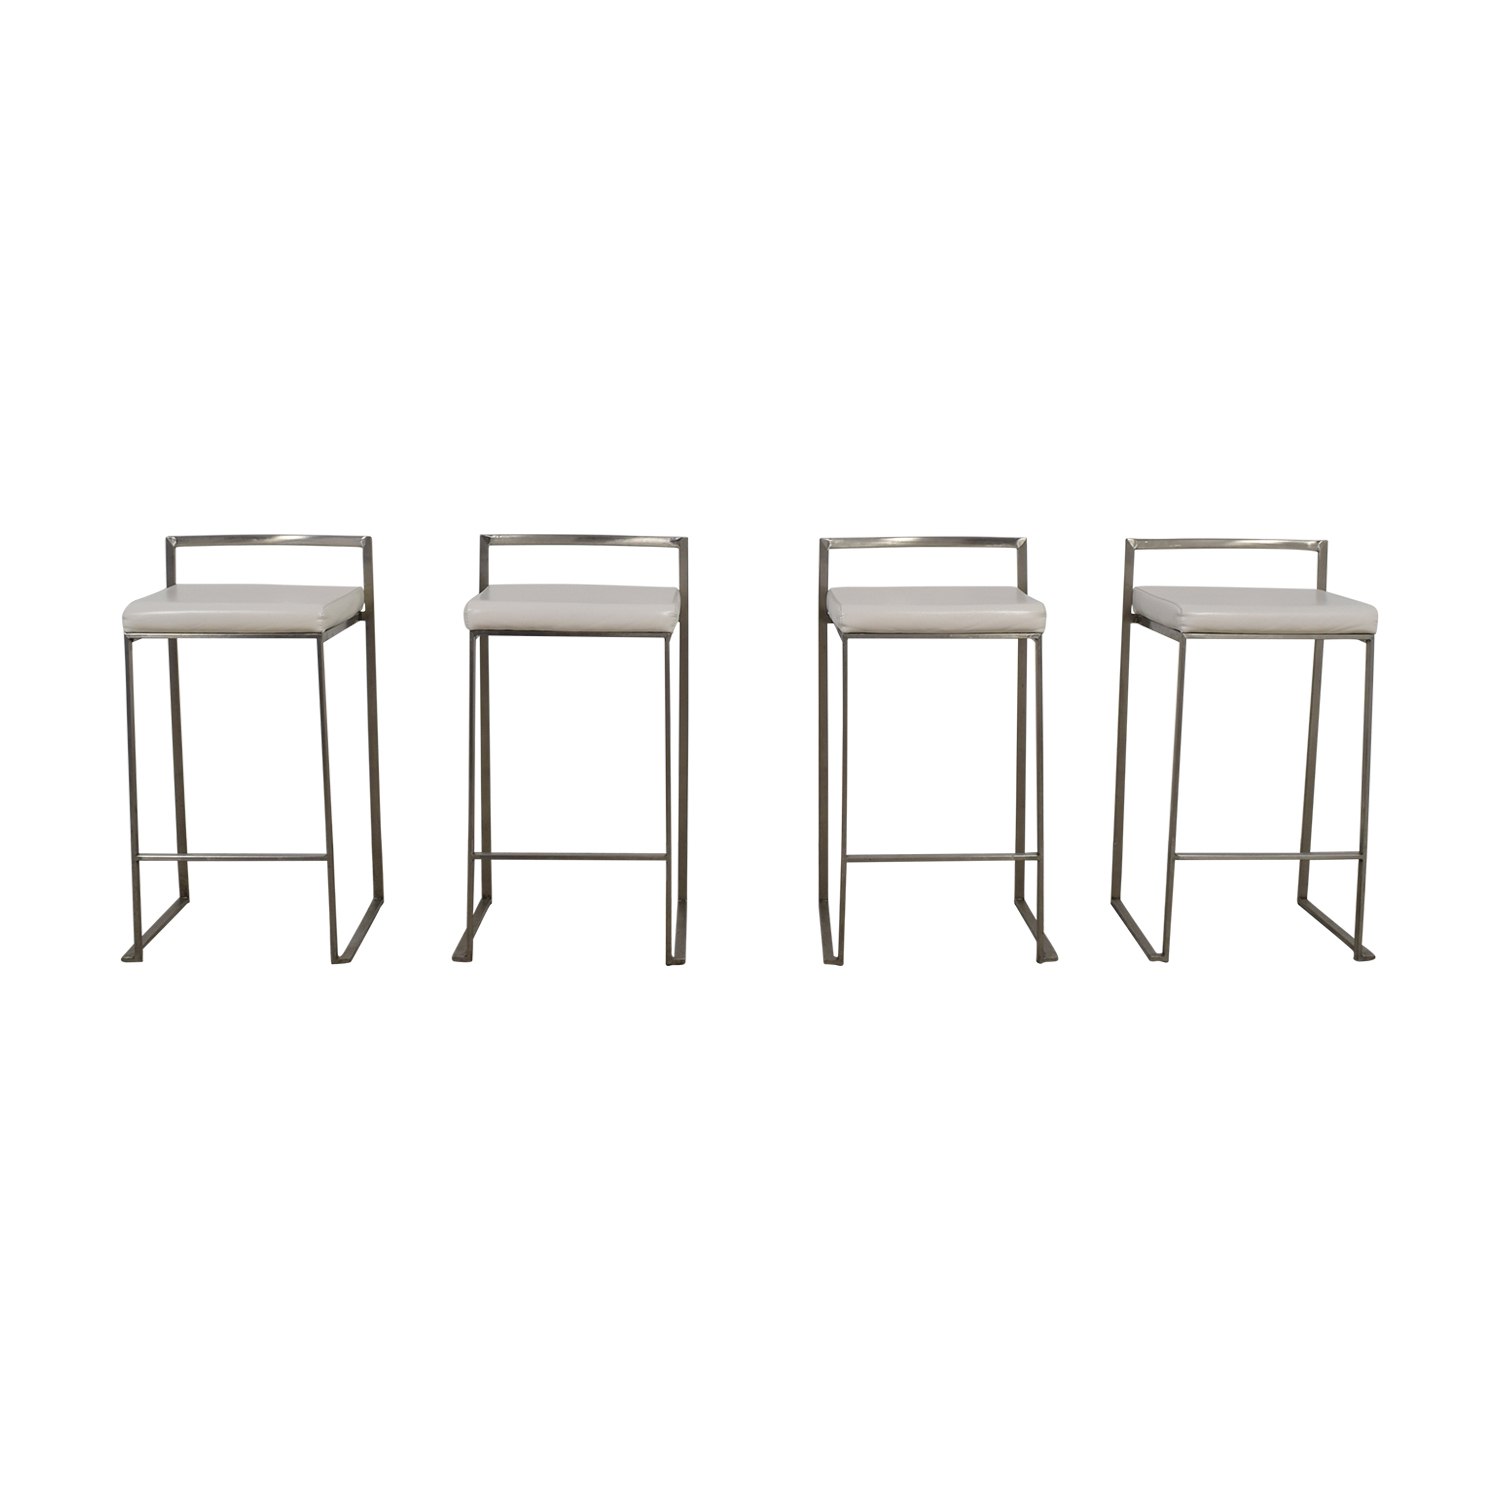 Brayden Studio White Stainless Steel Bar Stools sale